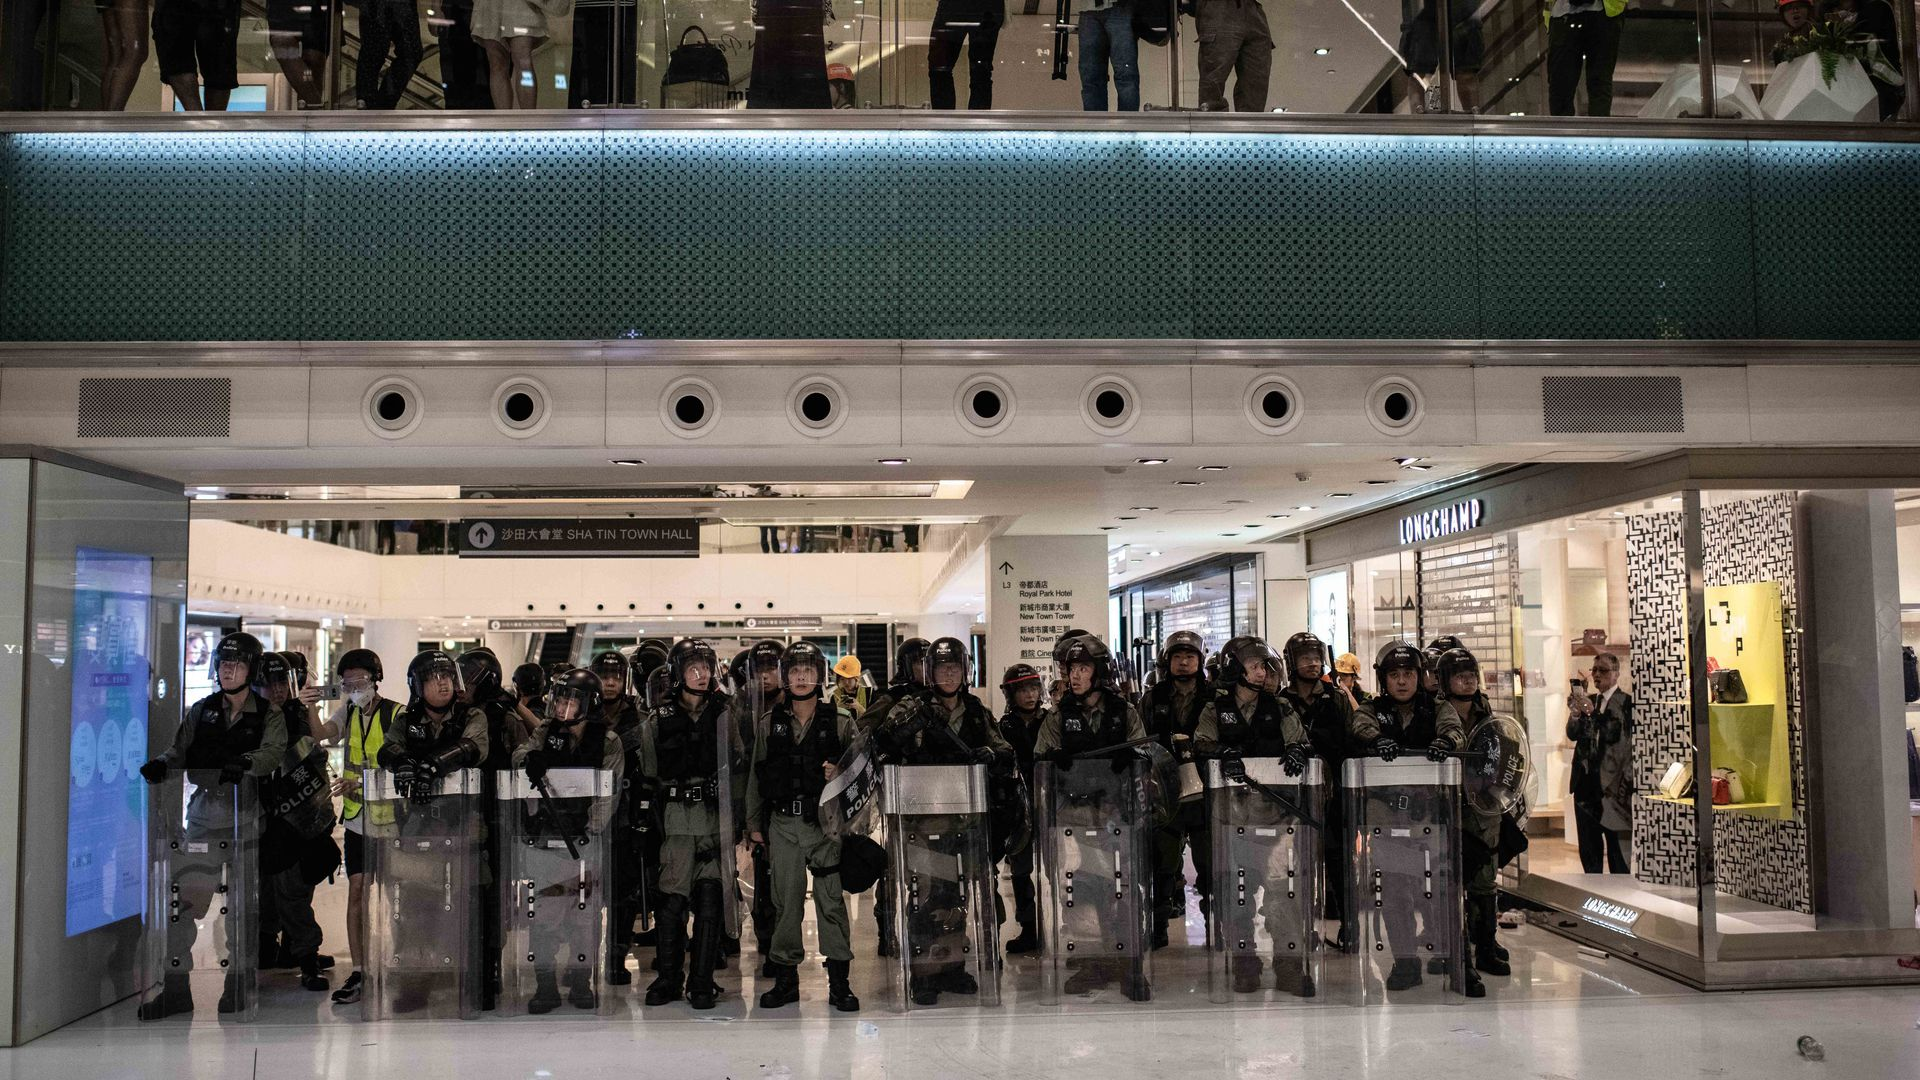 In this image, a line of riot police stand in a strip mall